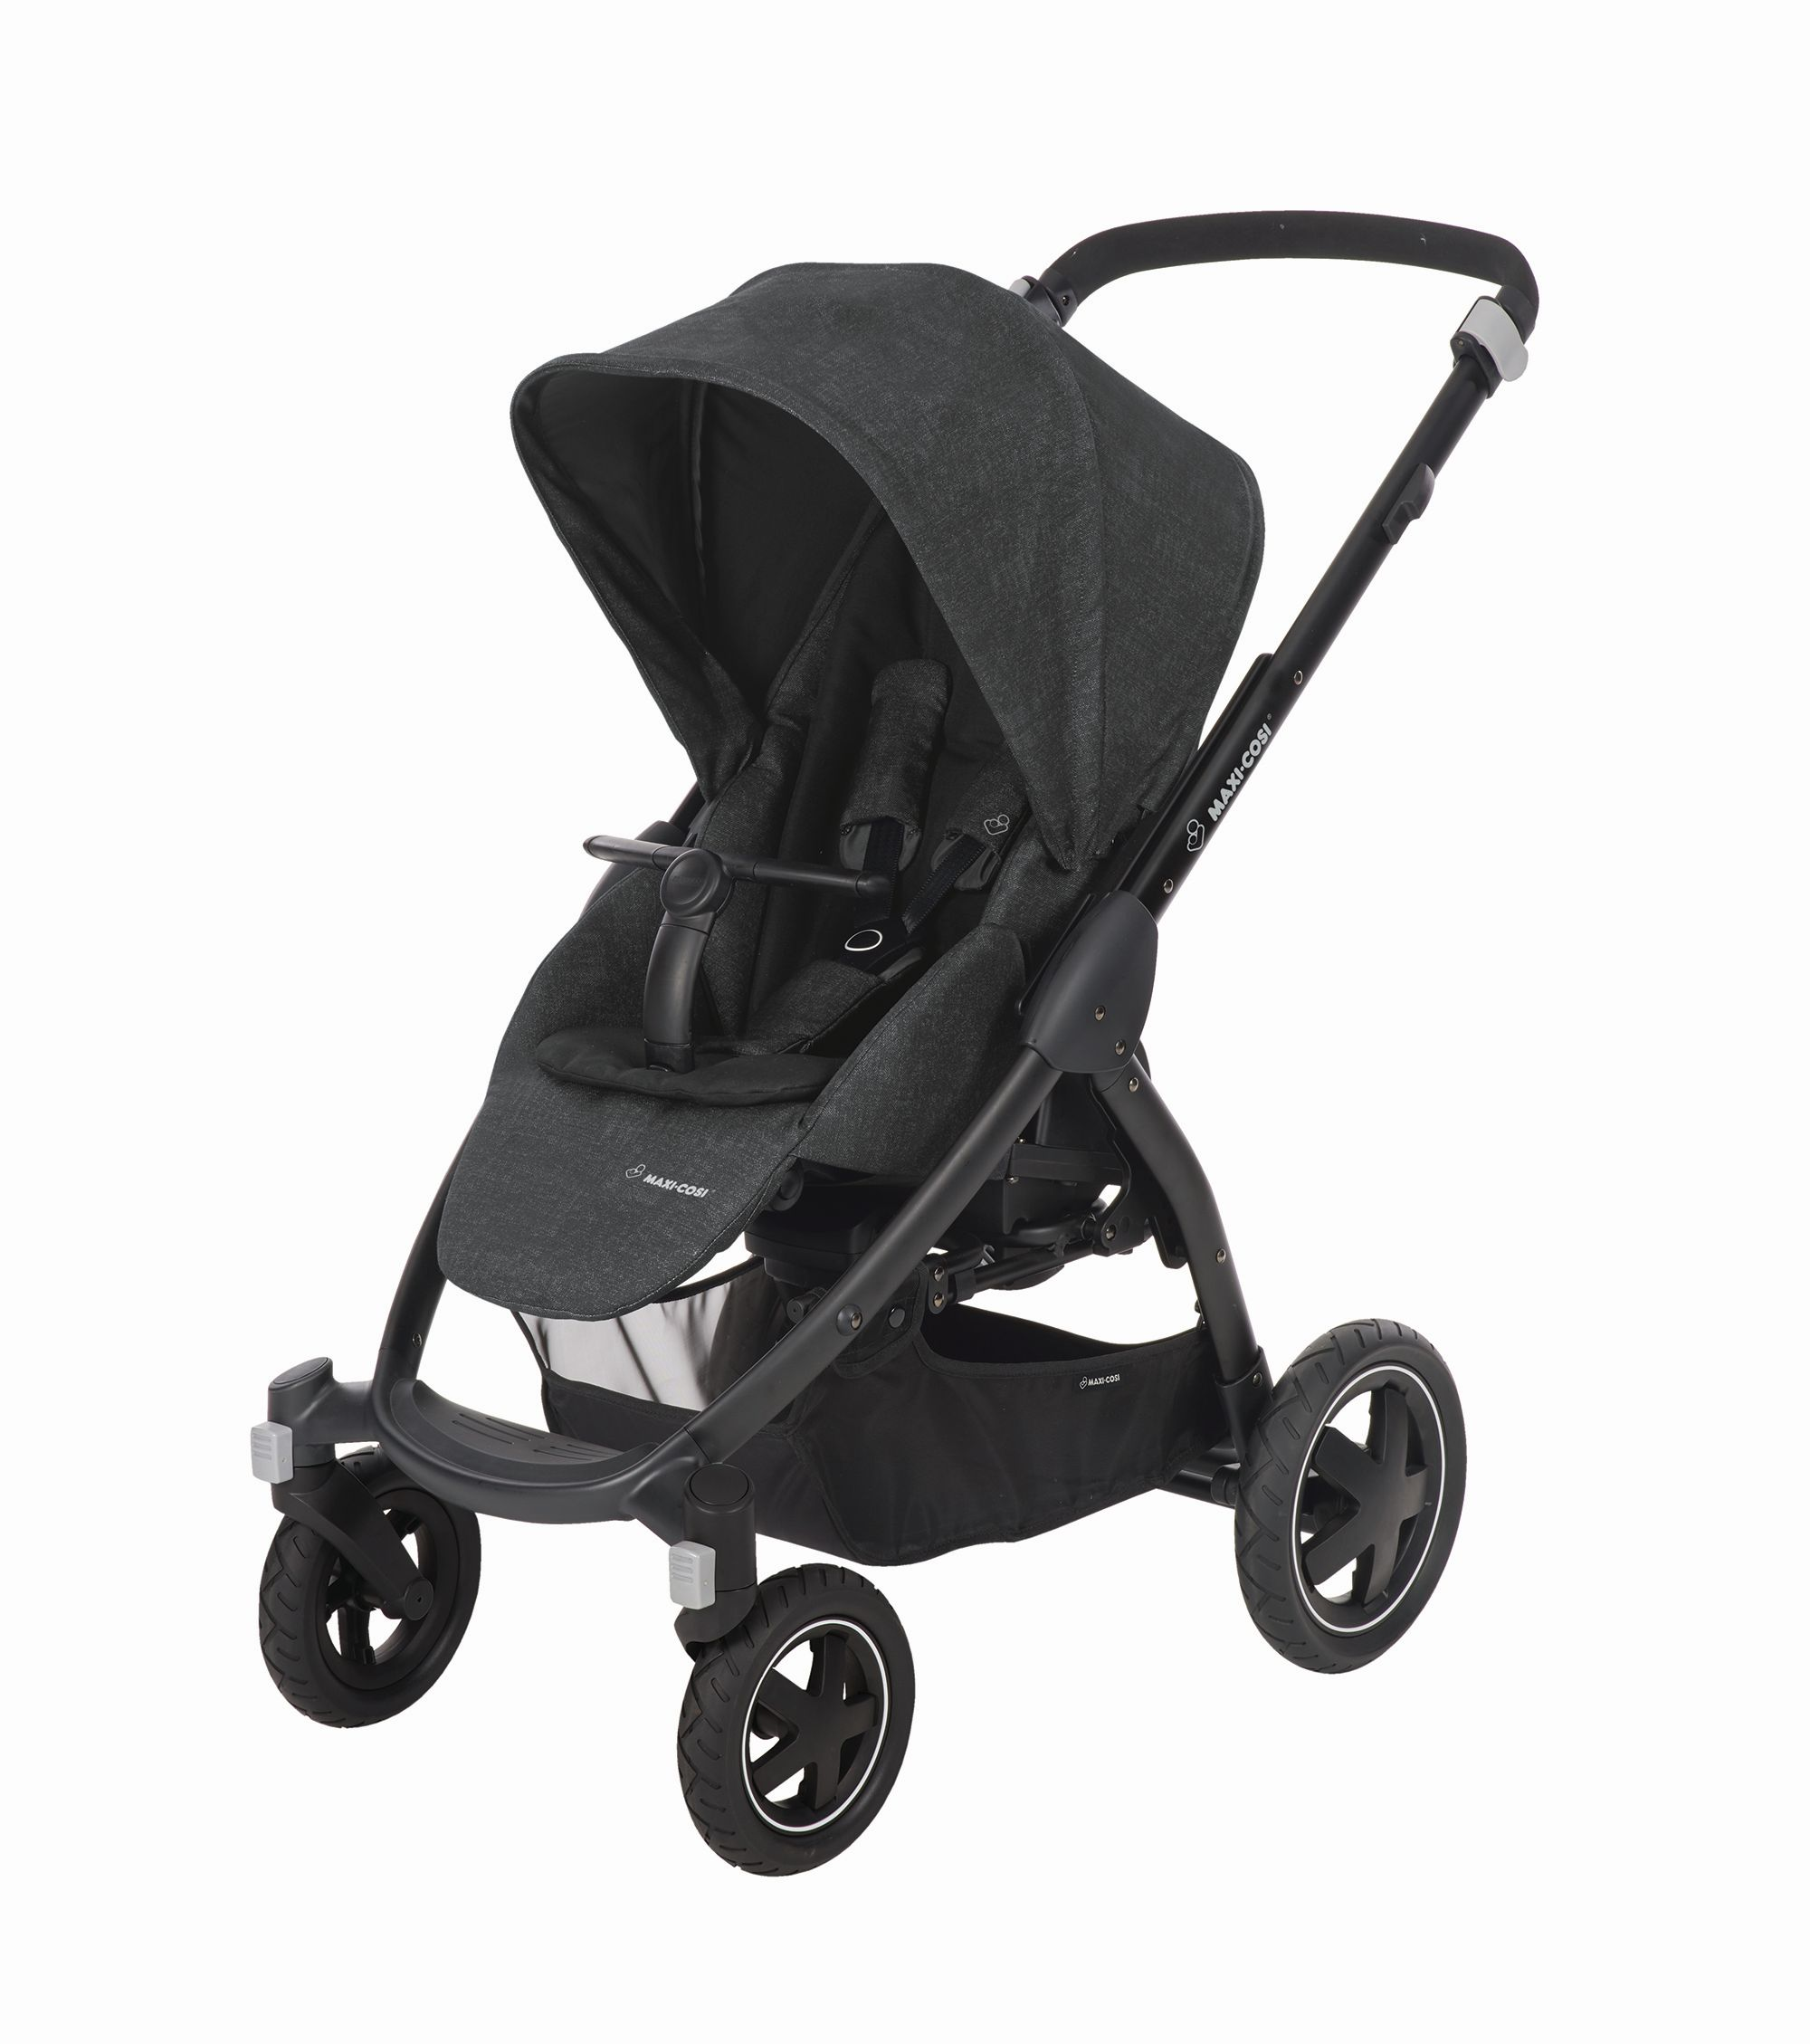 maxi cosi stroller stella 2018 nomad black buy at. Black Bedroom Furniture Sets. Home Design Ideas